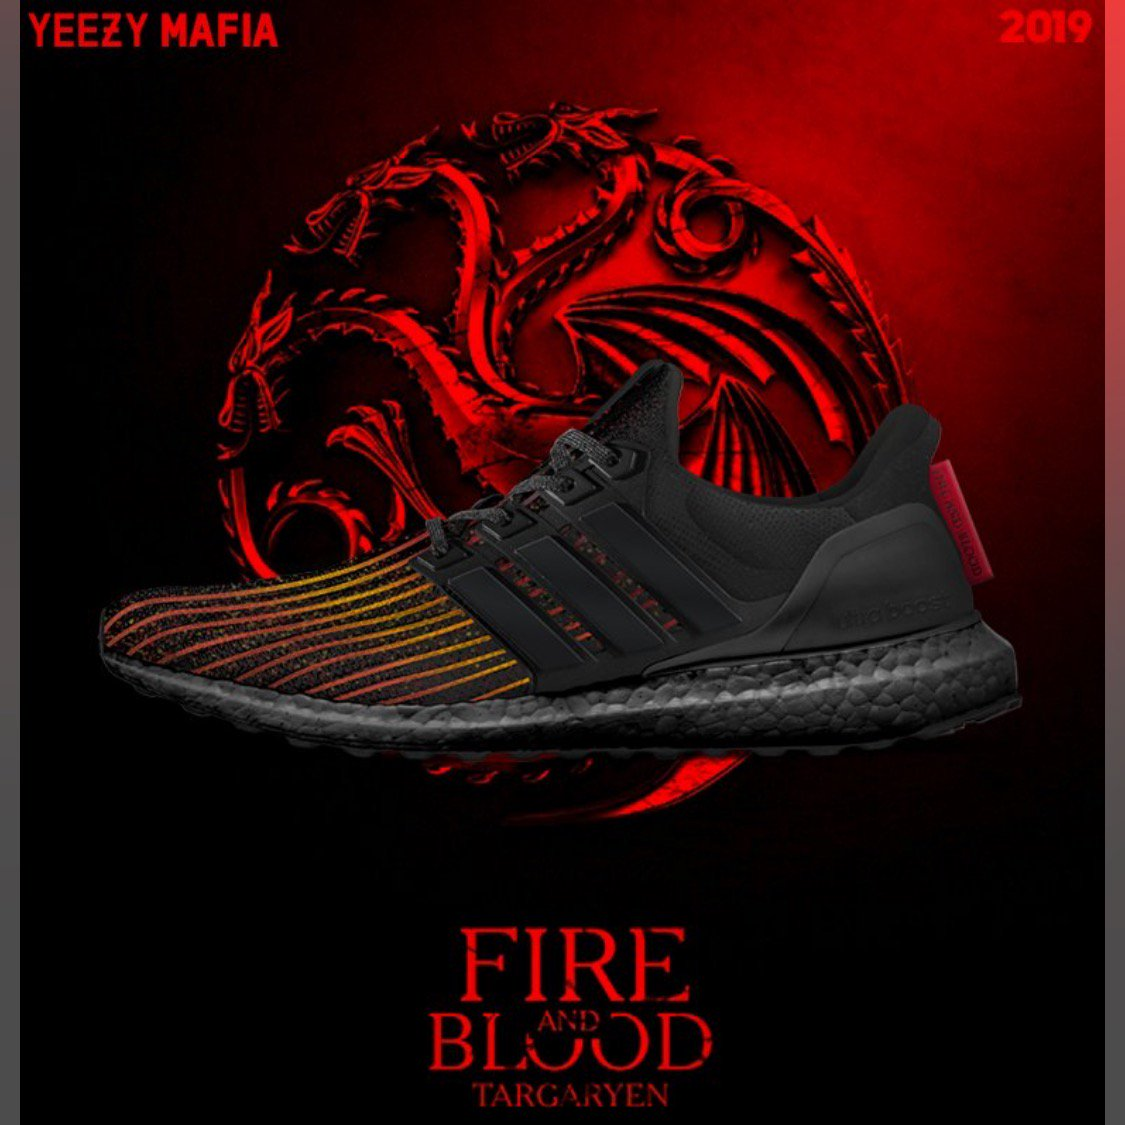 fa808cbdc These Game of Thrones-themed shoes from Adidas are EPIC! 👀 🔥 (via   theyeezymafia)pic.twitter.com xj0SkBSfNA